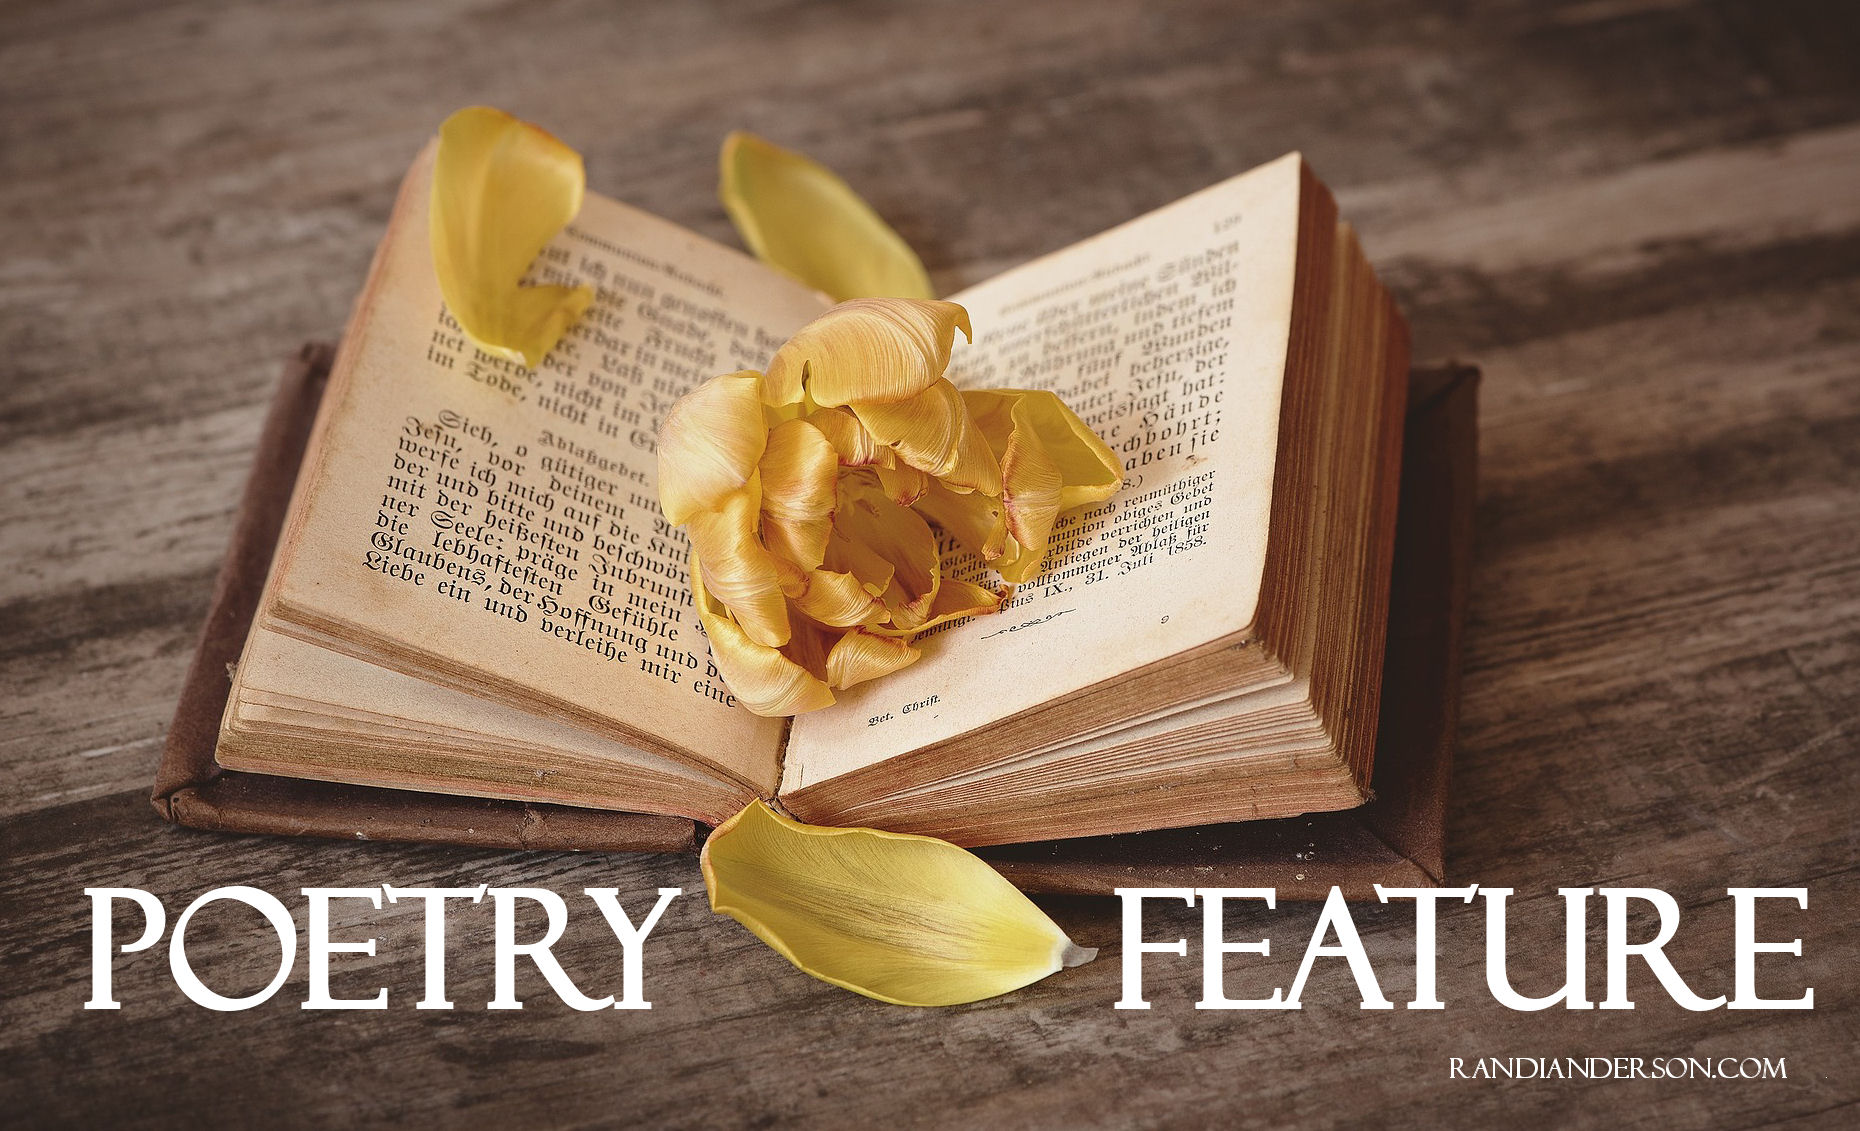 Poetry Feature Image - RandiAnderson.com